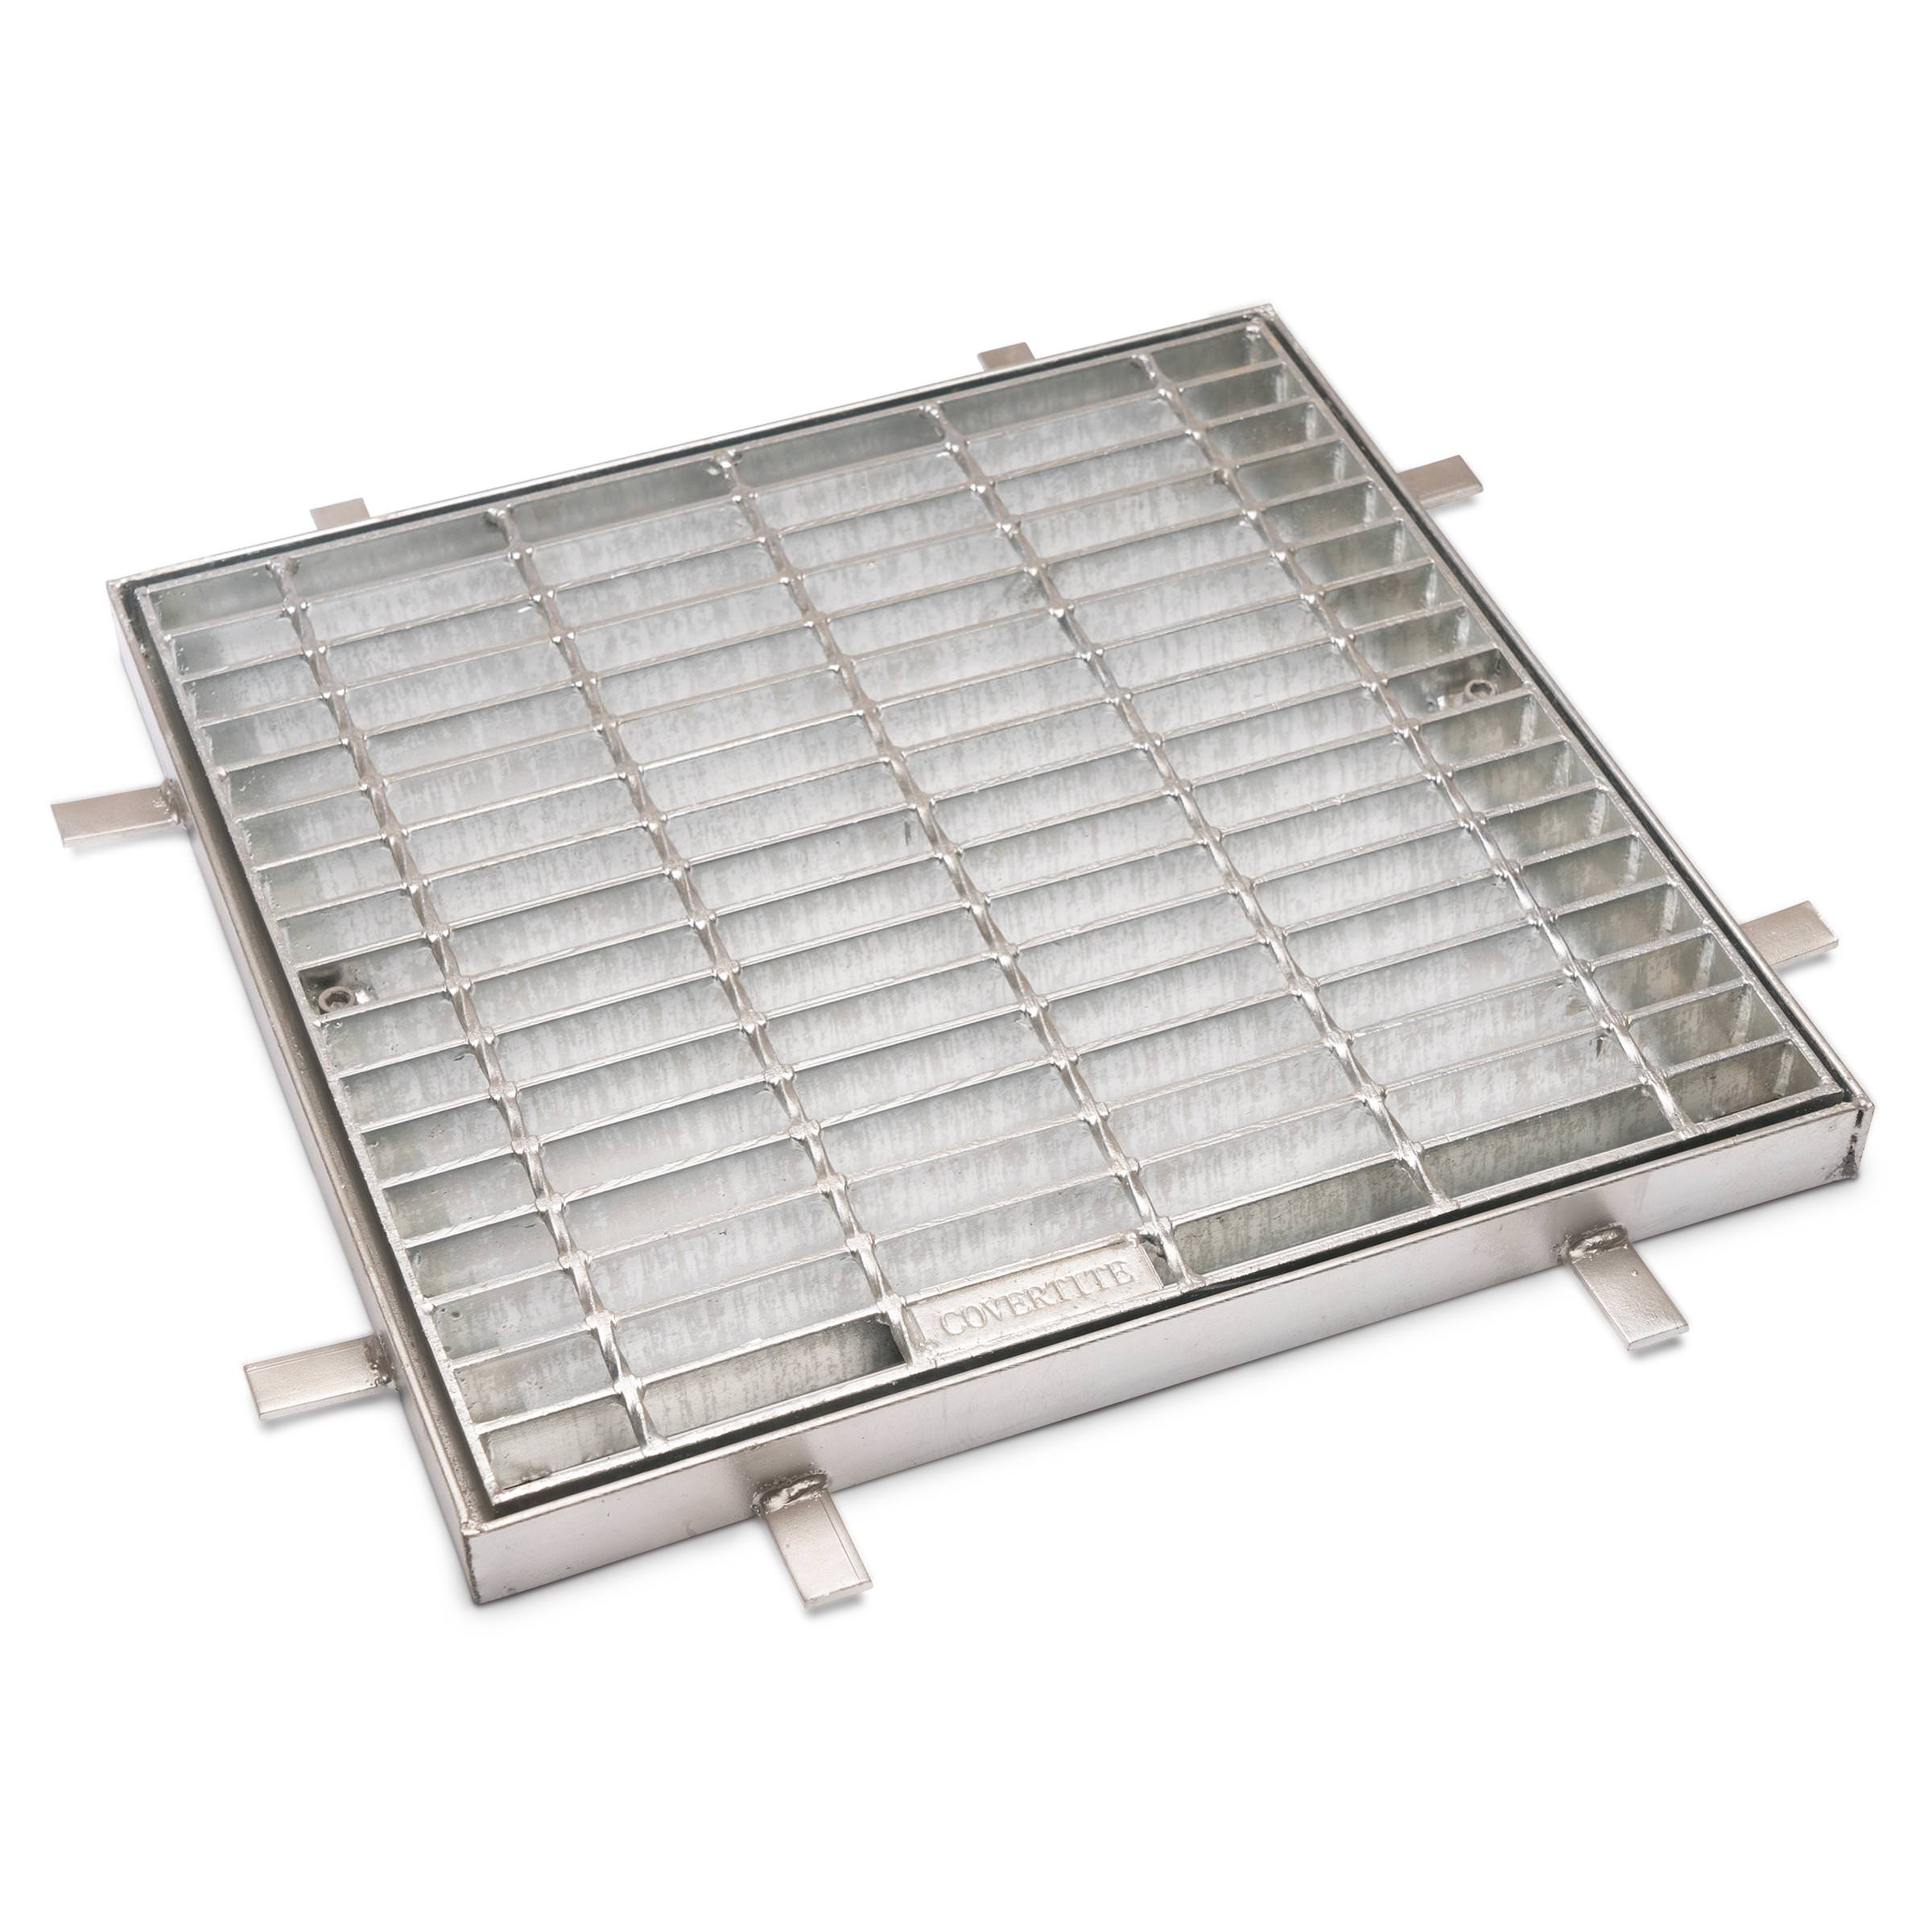 Galvanised Grates and Frames